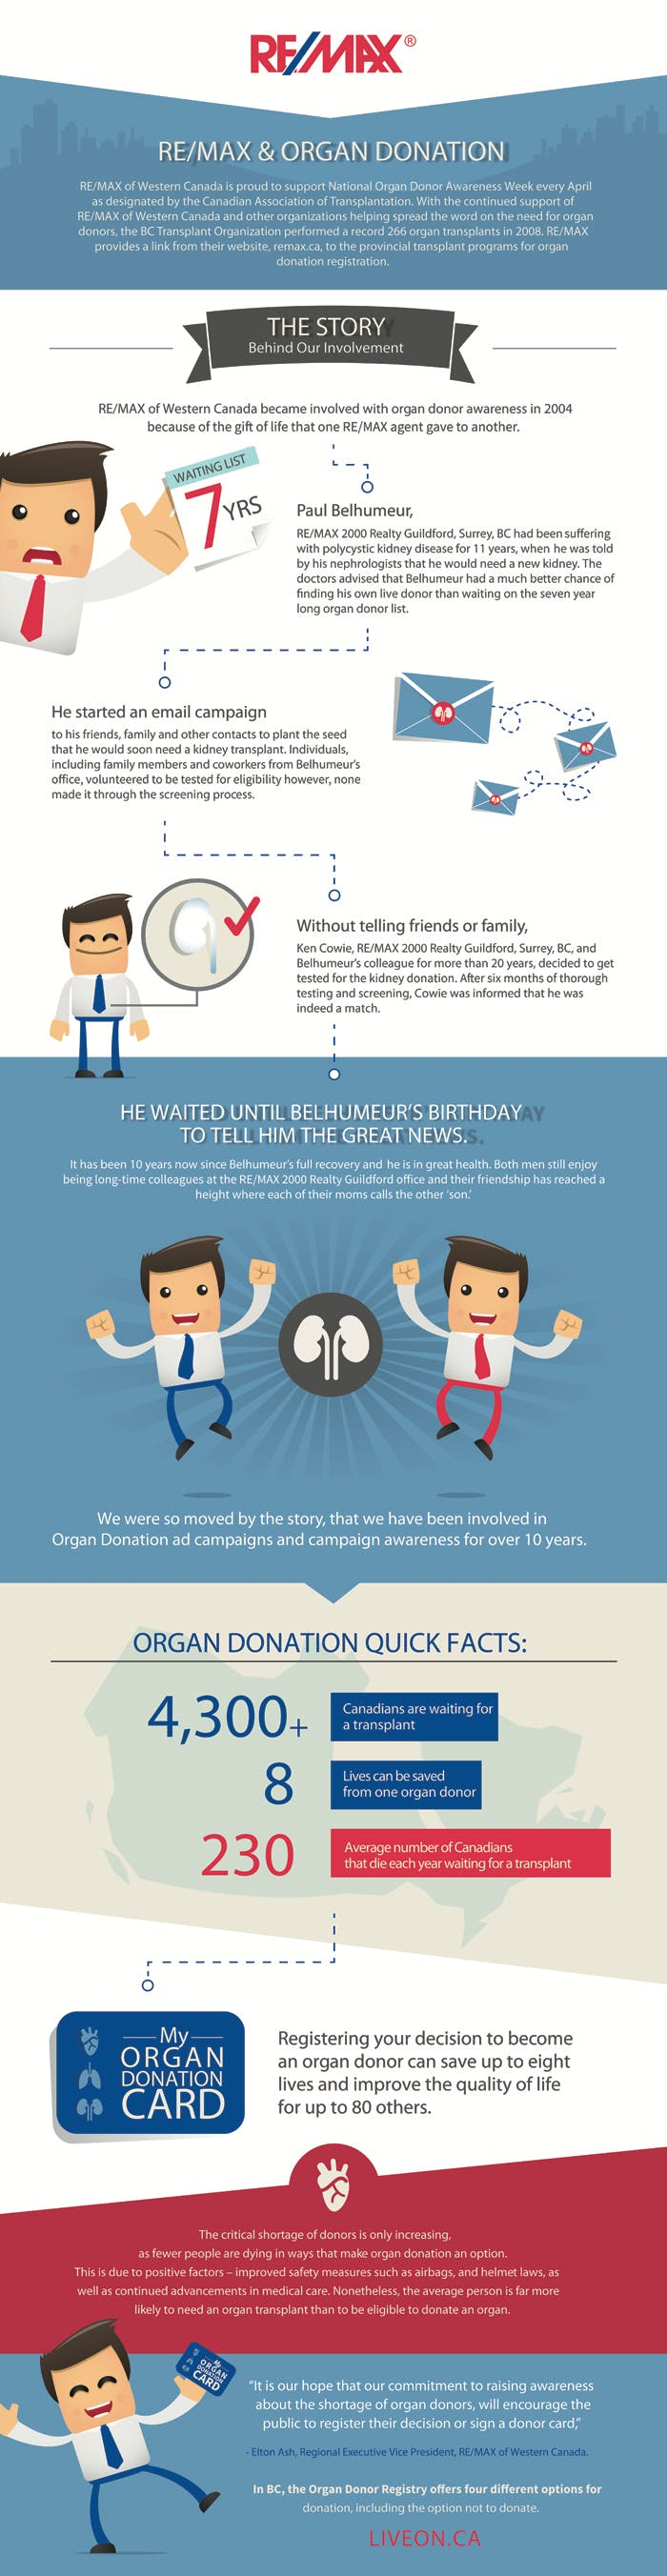 remax_infographic_organ-donation_2016-test-1